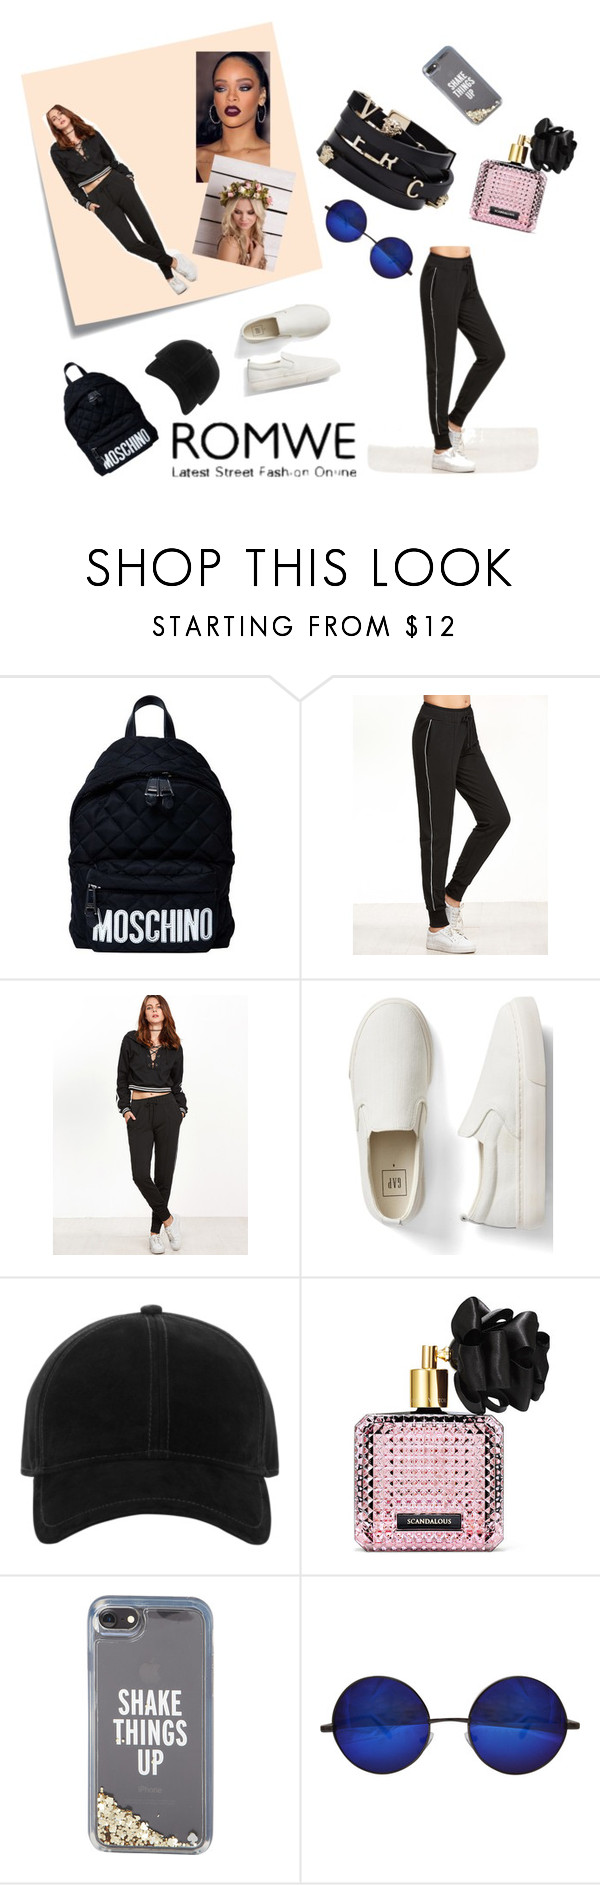 """Contest (romwe)! - Win these black pants!"" by dancerjacy22 ❤ liked on Polyvore featuring Moschino, Post-It, Gap, rag & bone, Versace, Victoria's Secret and Kate Spade"